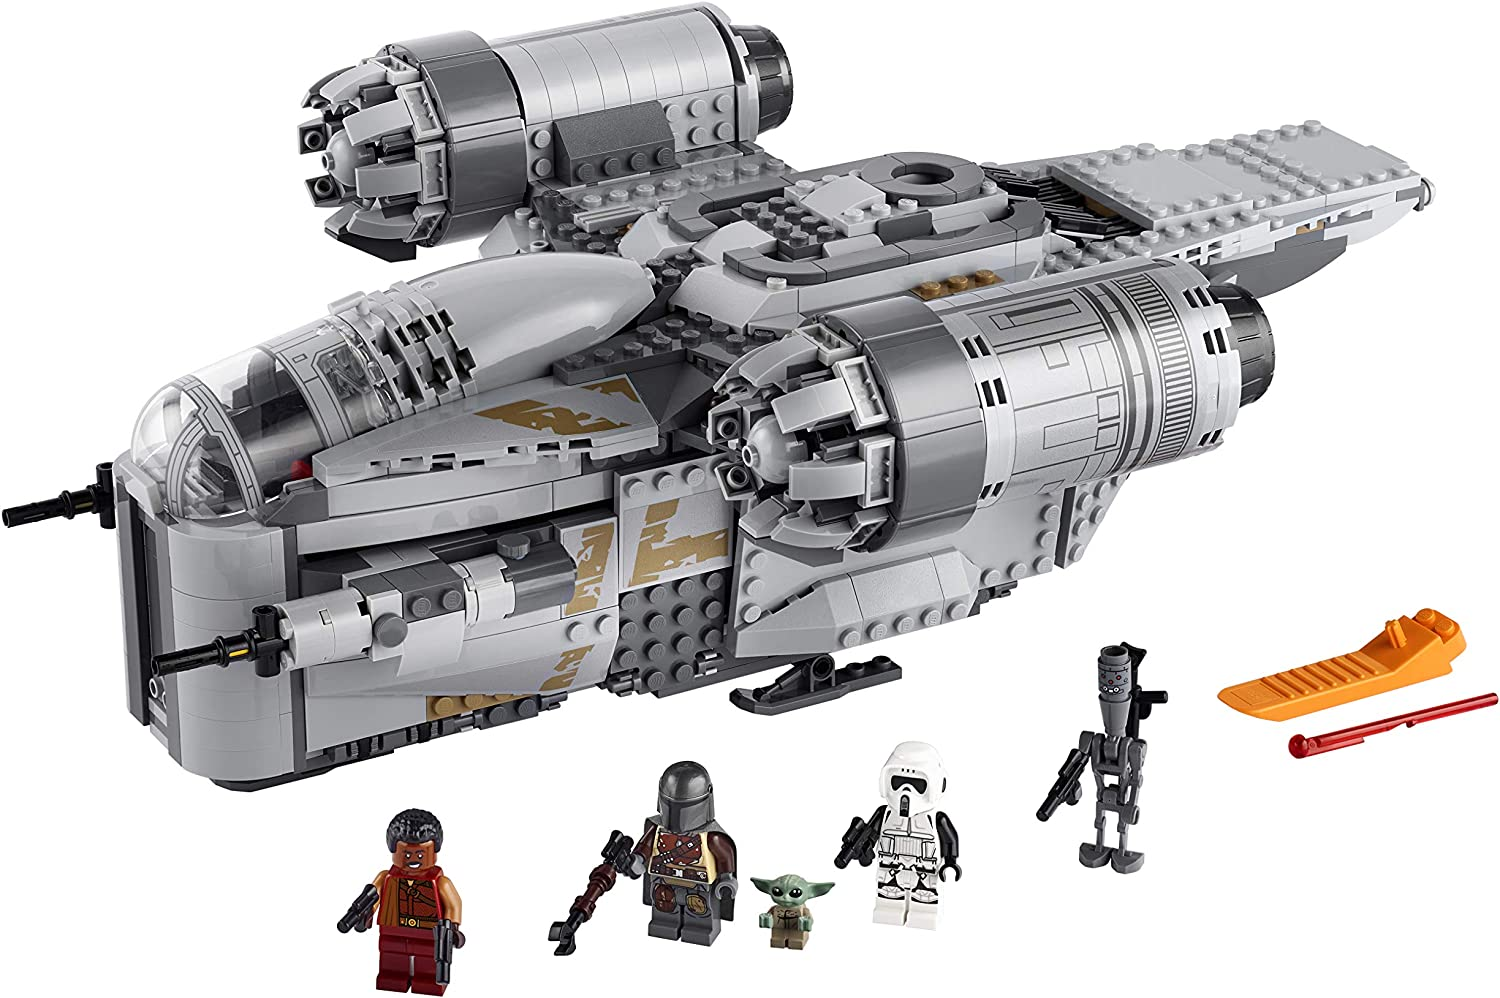 LEGO Star Wars: The Mandalorian The Razor Crest 75292 Building Kit, New 2020, Amazon Exclusive (1,023 Pieces)